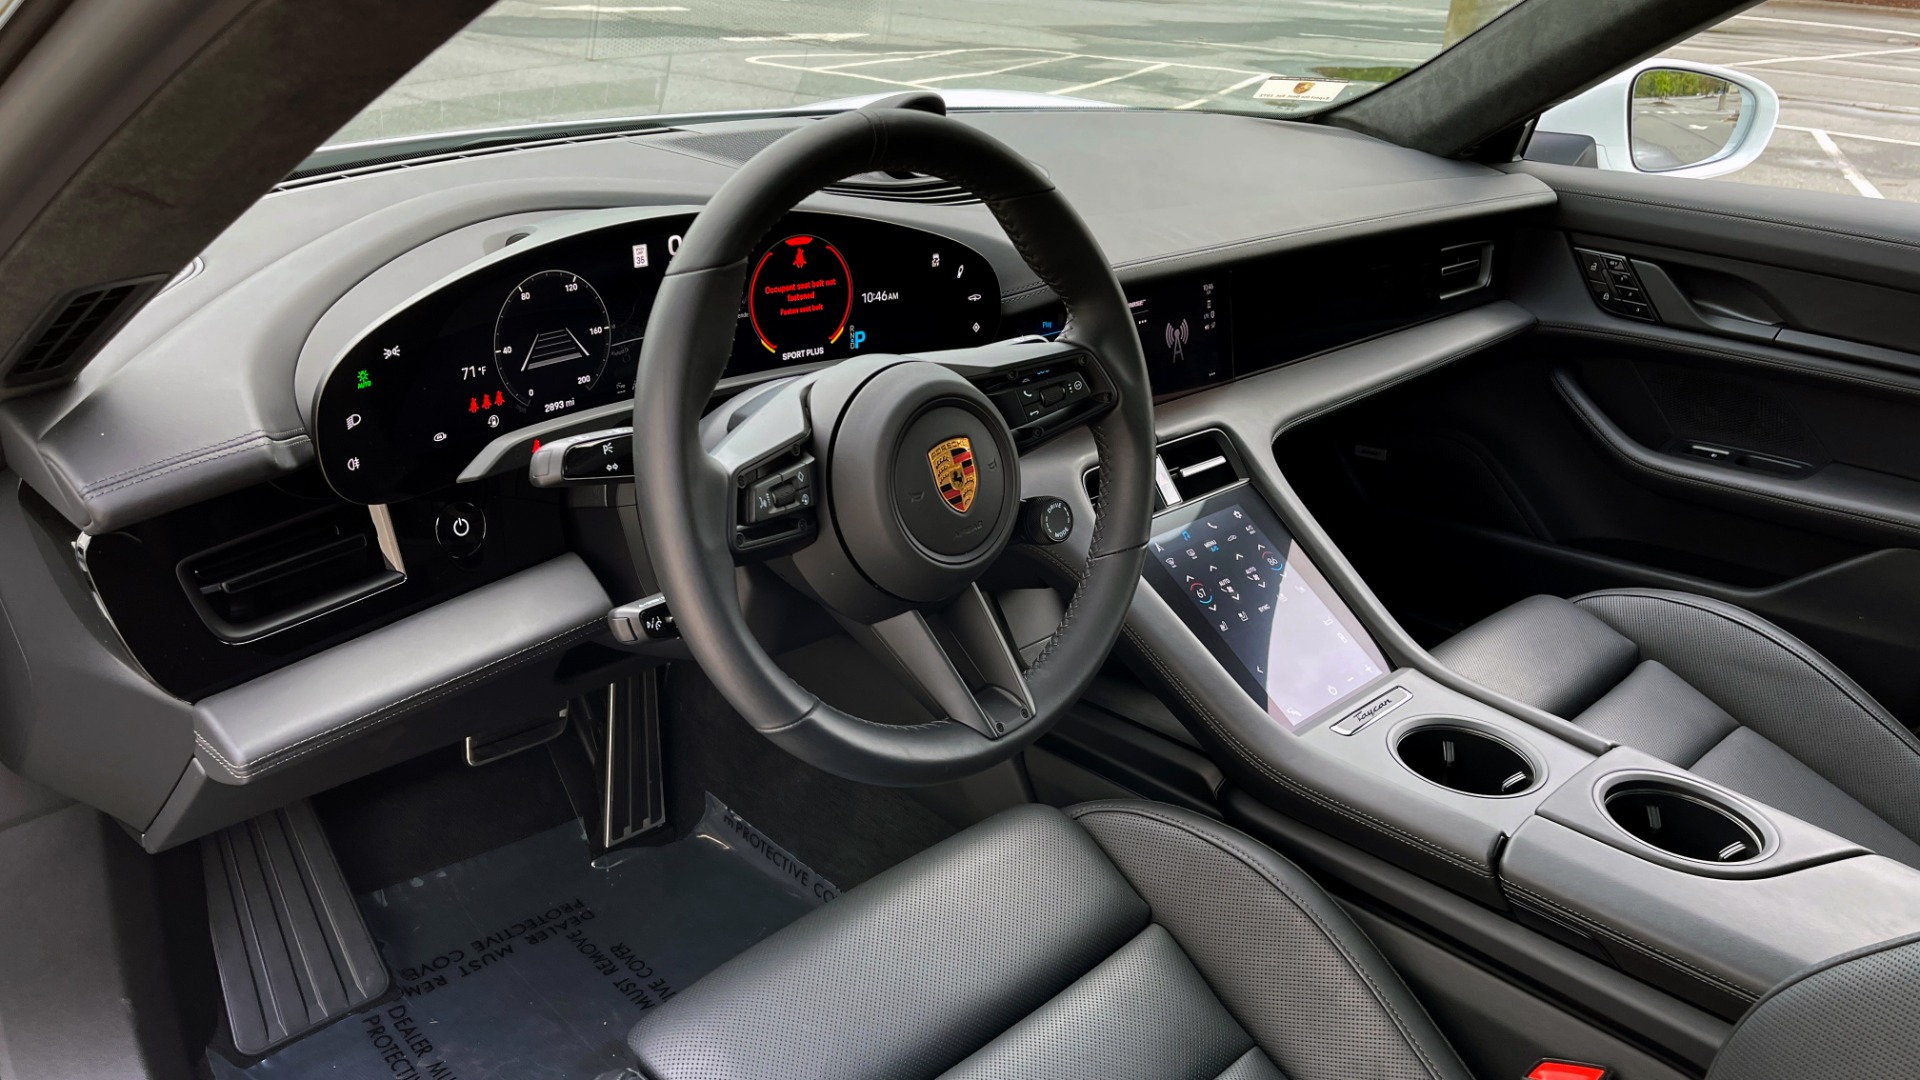 Used 2020 Porsche TAYCAN TURBO SEDAN / AWD / NAV / BOSE / PANO-ROOF / LCA / SURROUND VIEW for sale $162,995 at Formula Imports in Charlotte NC 28227 36